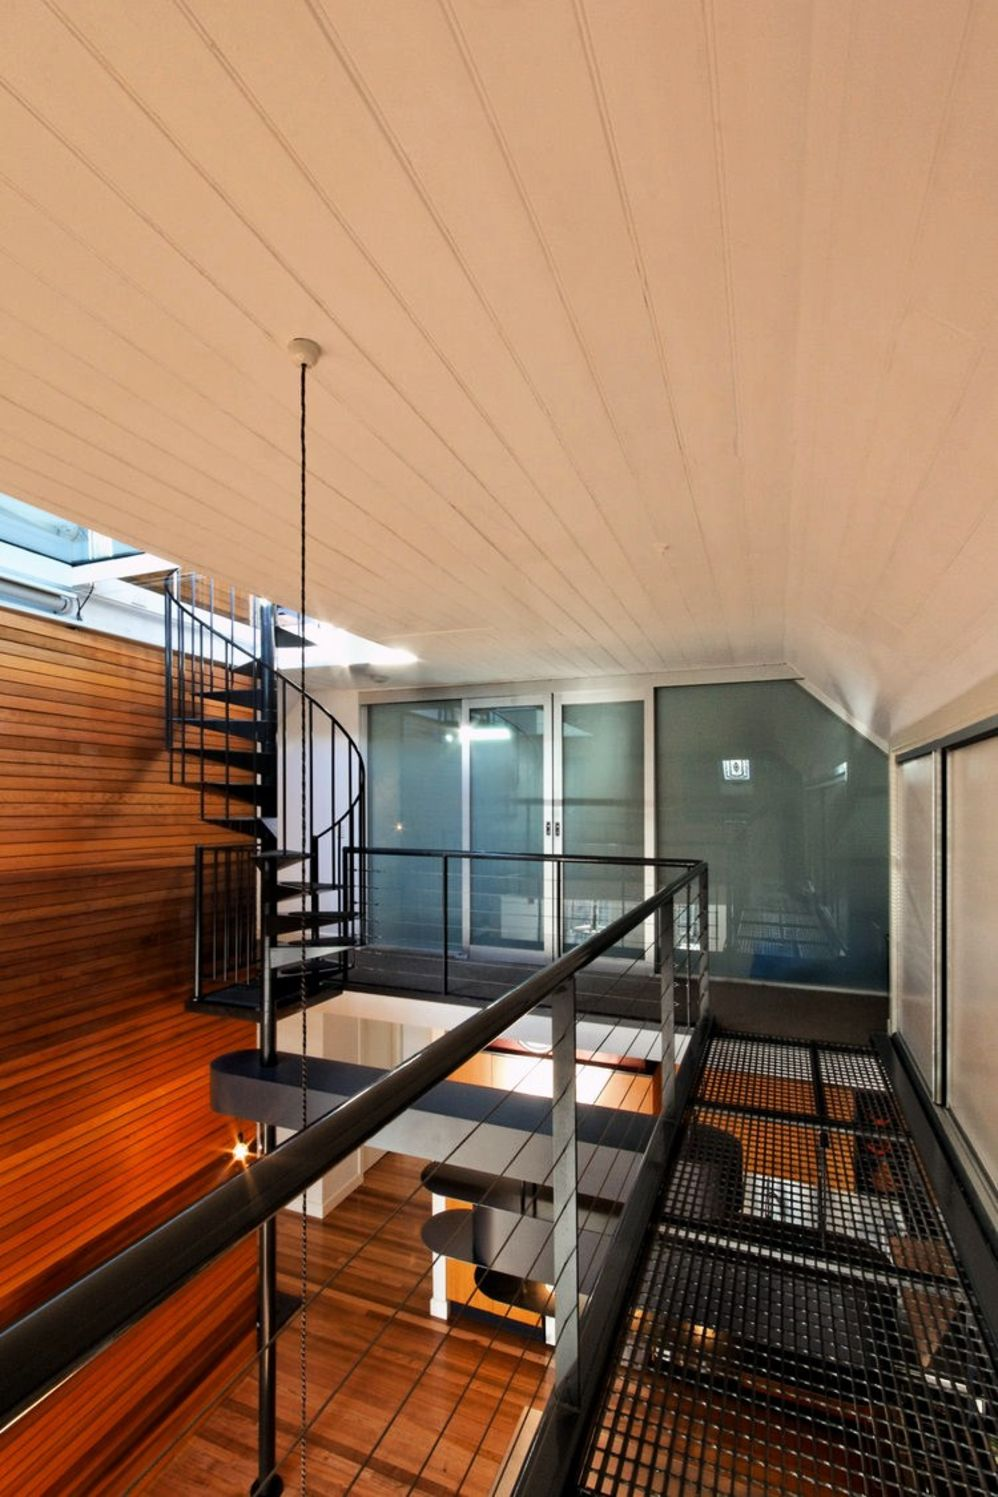 Cozy home design with wood rich interior elements constructing high complexity that enhance the house value and style (3)